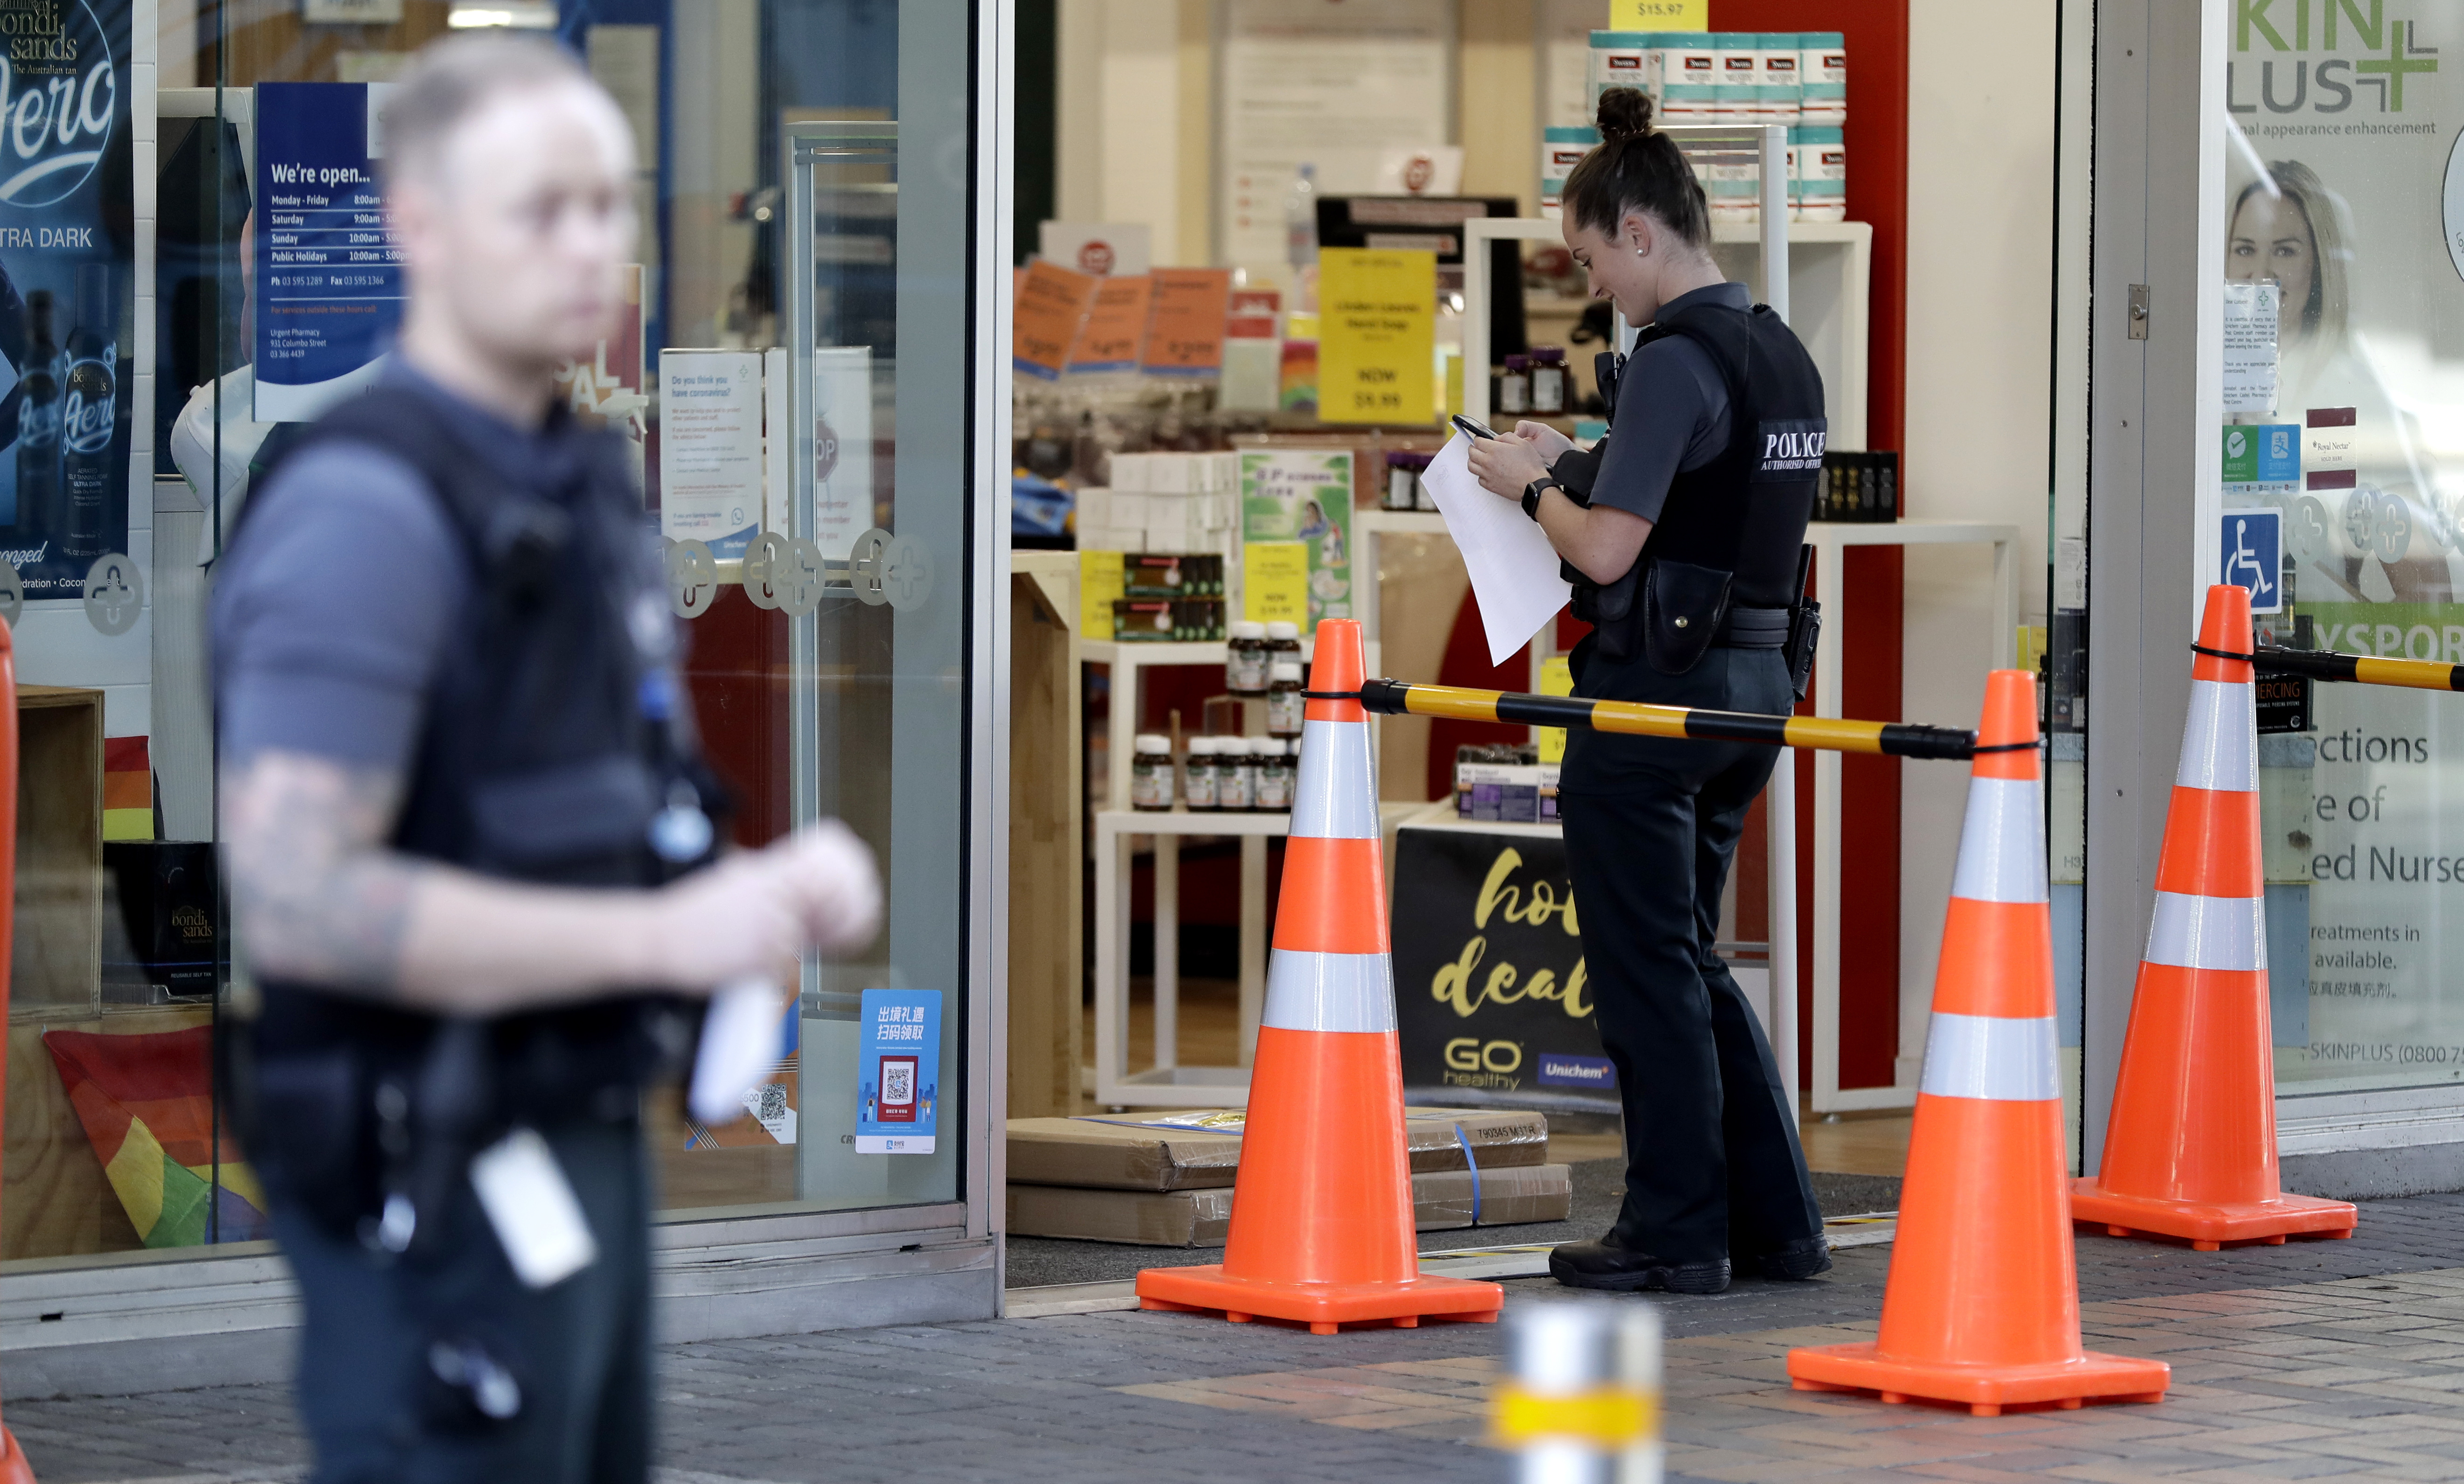 Police queue outside a pharmacy for their influenza injection in Christchurch, New Zealand, Thursday, March 26, 2020.